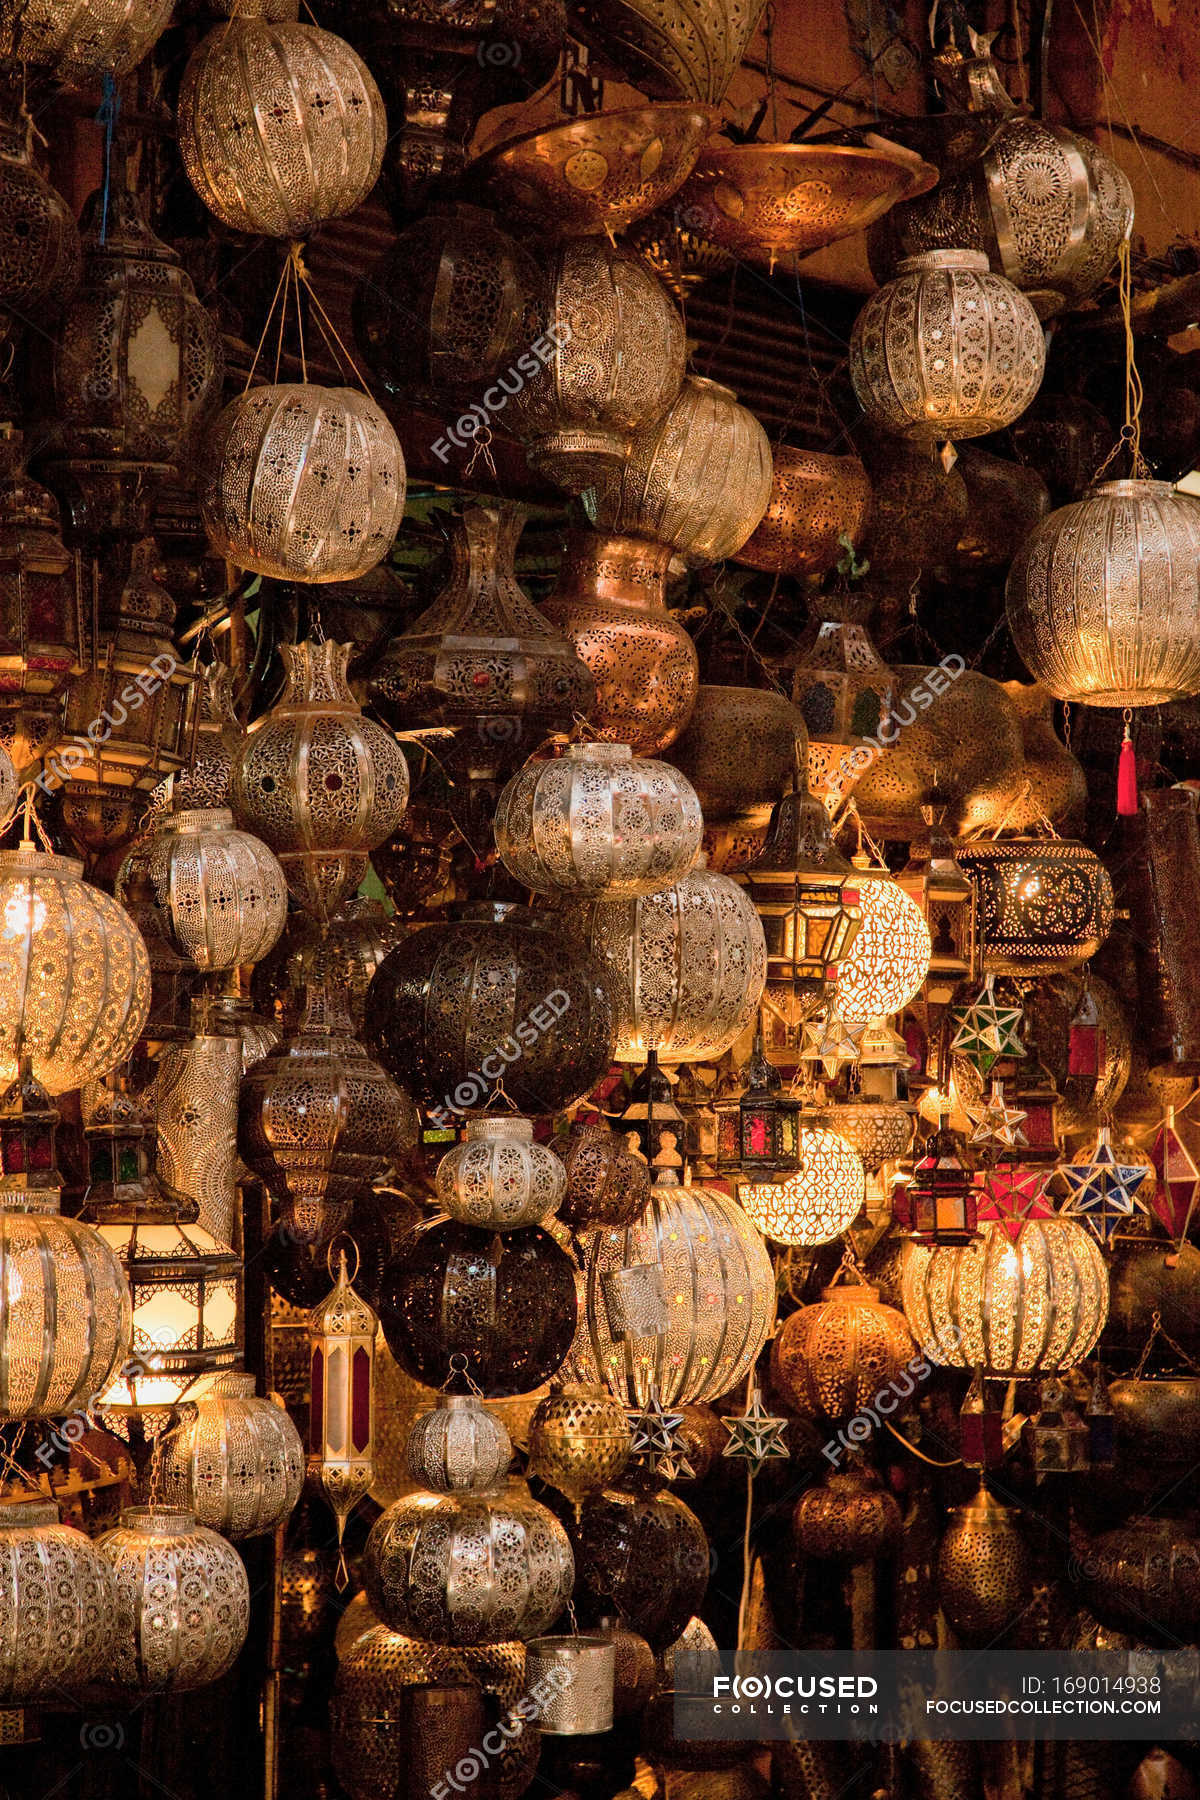 Decorative Lanterns For Sale At Shop Traditional Culture Travel